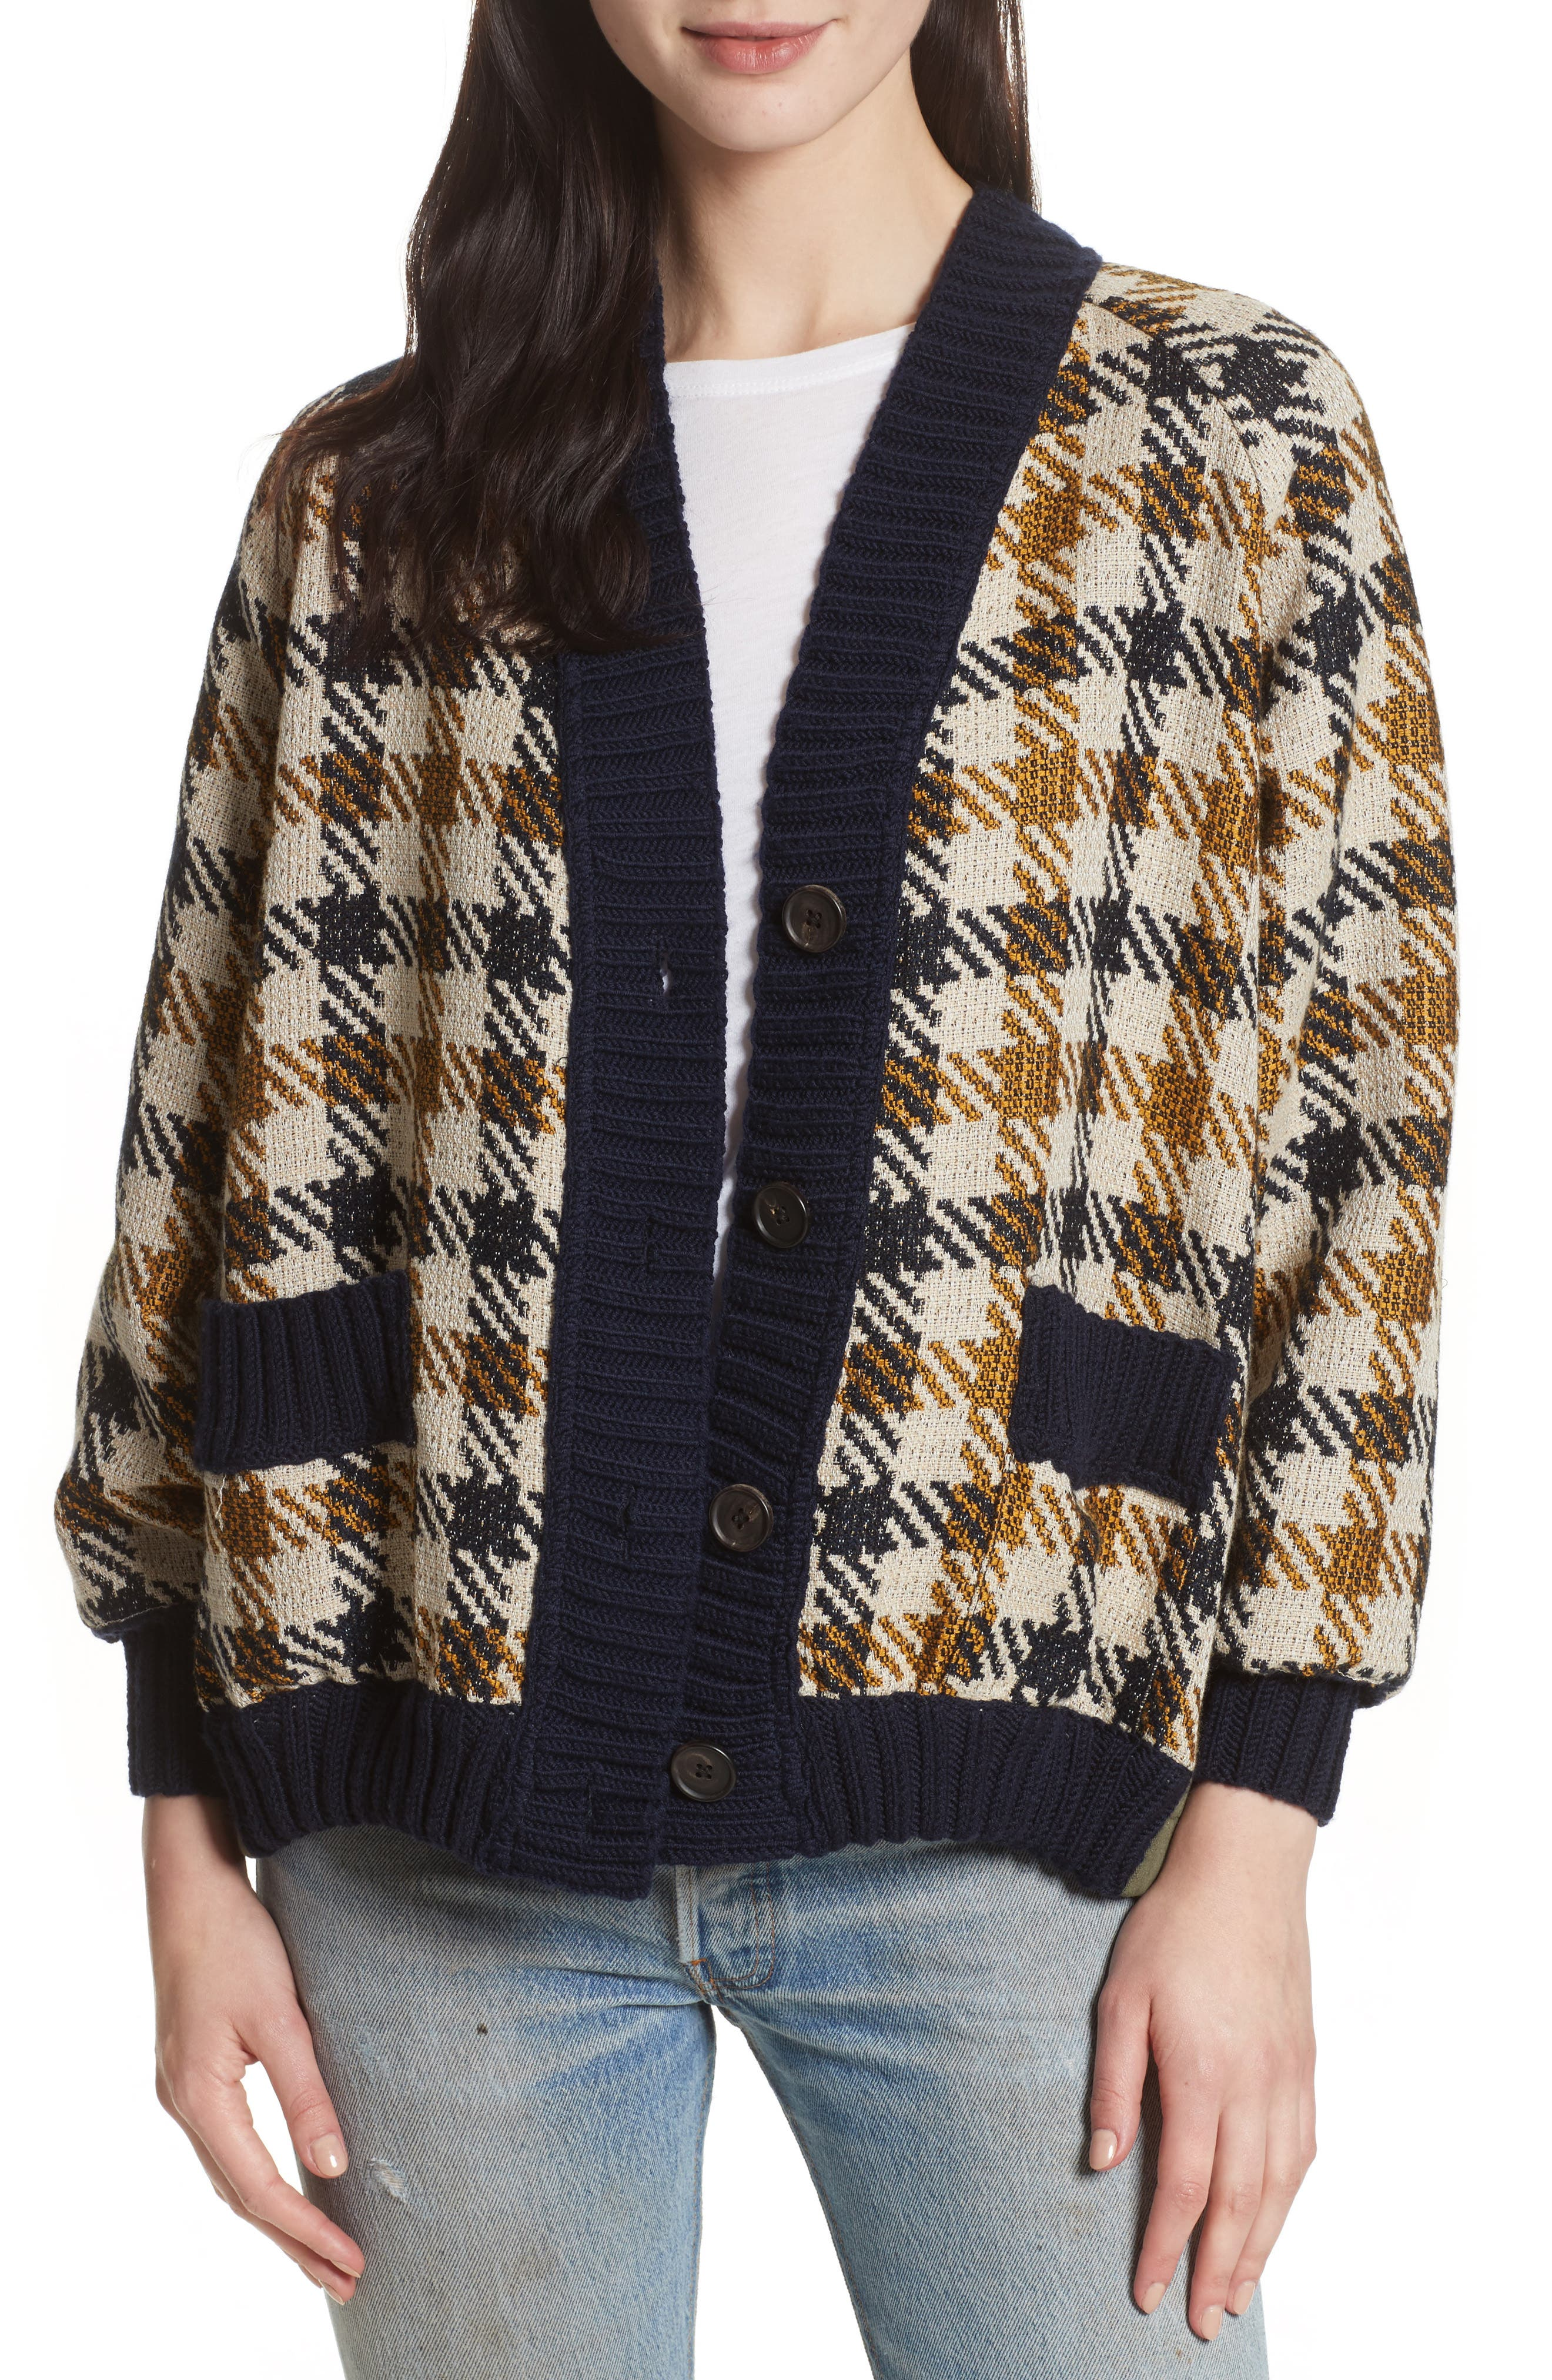 Sea Houndstooth Boyfriend Cardigan